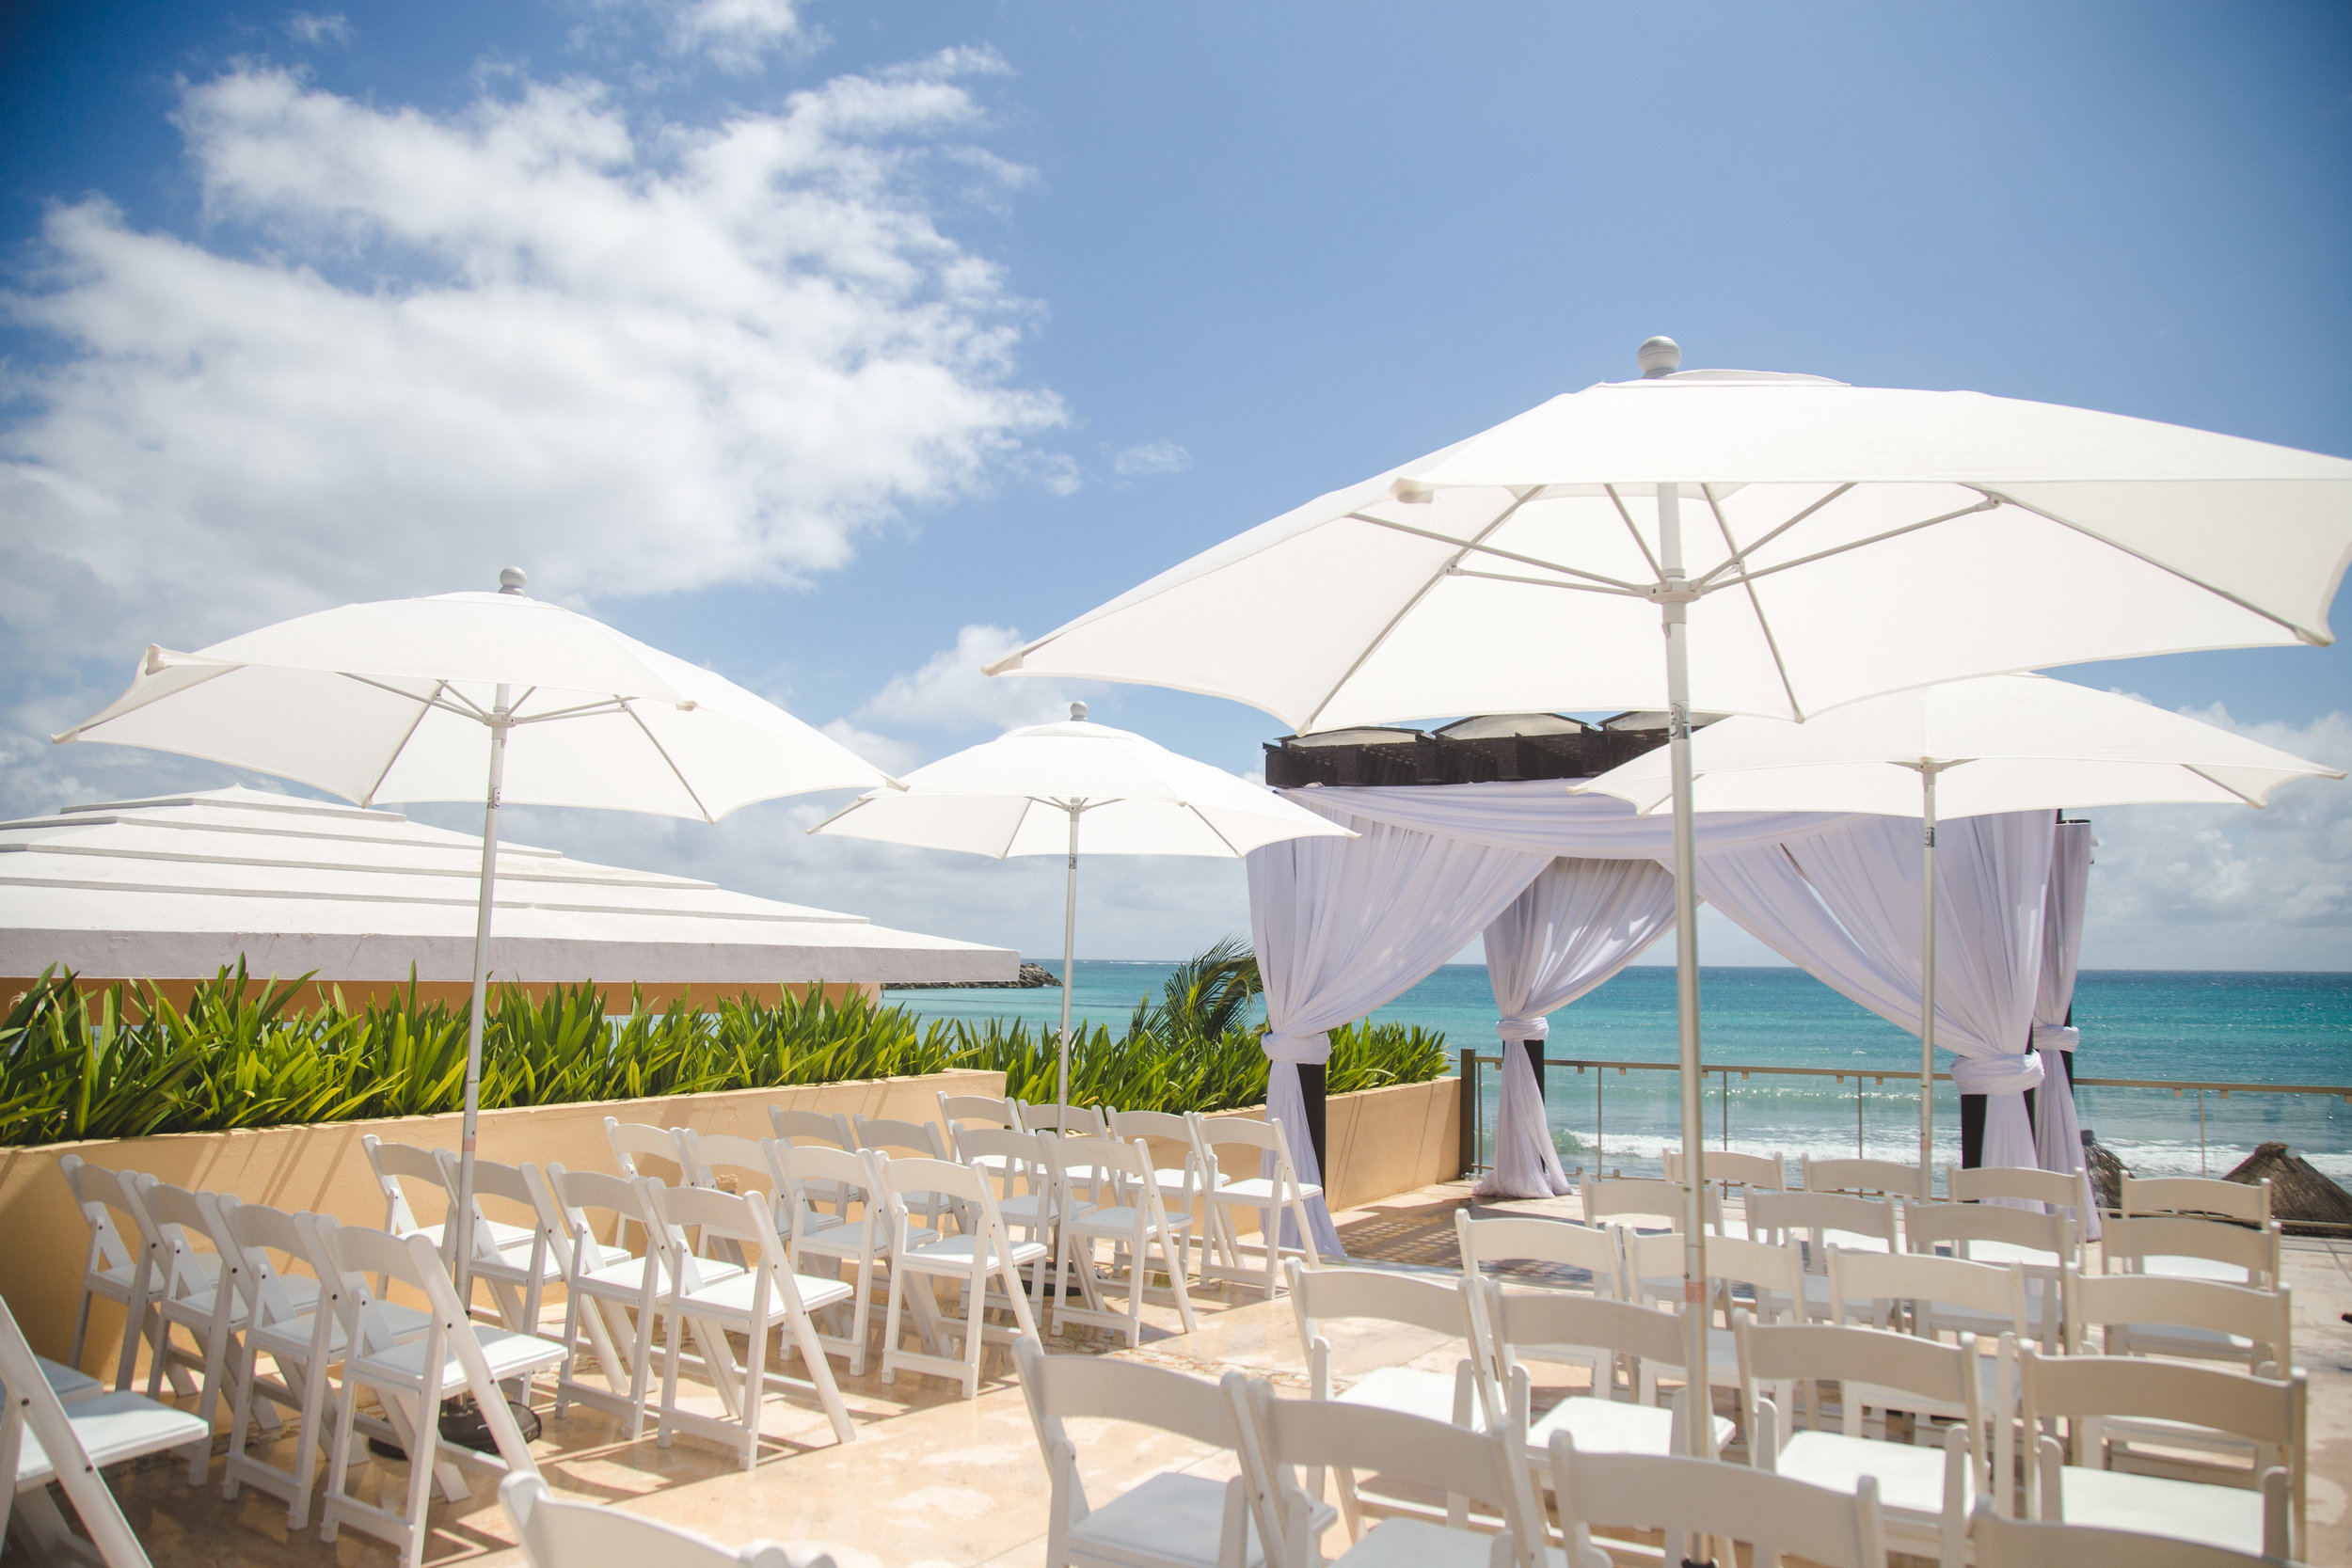 PERGOLA IN WHITE WITH UMBRELLAS II.jpg